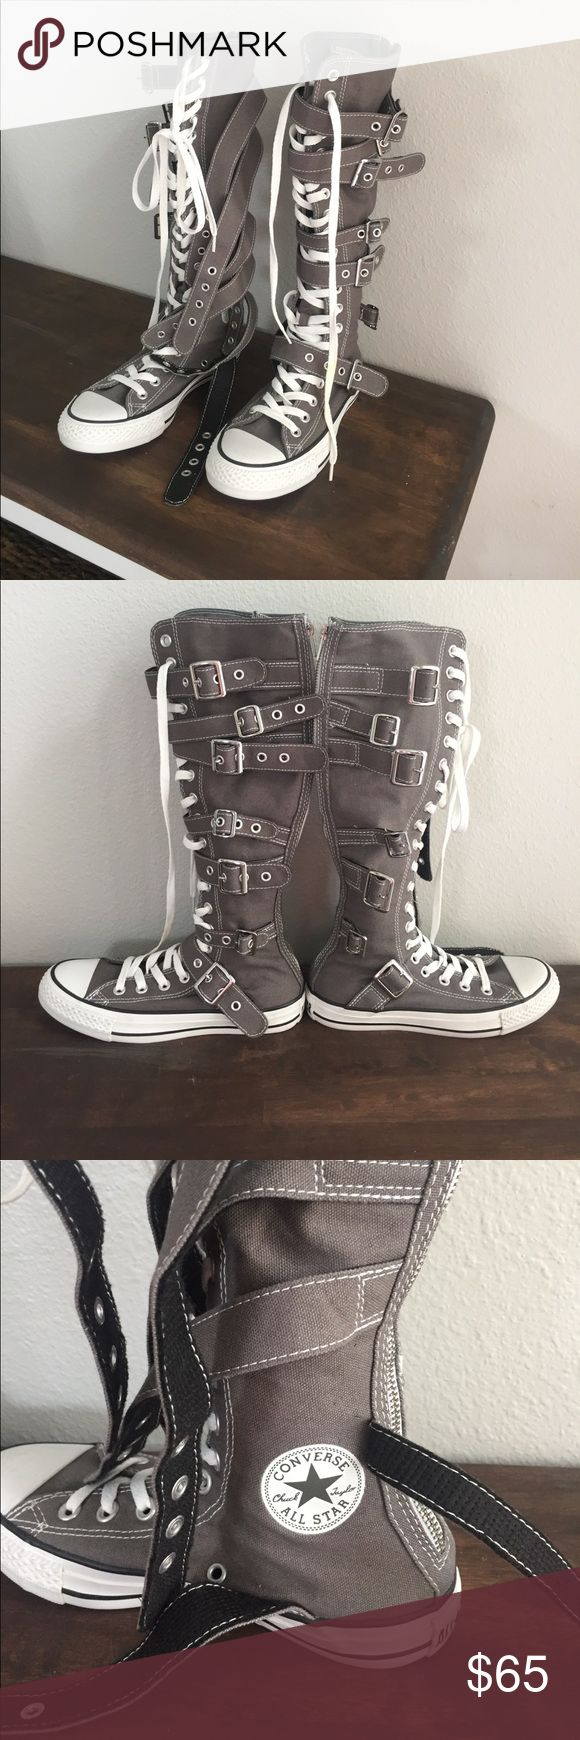 CONVERSE ⭐️ ULTRA HIGH TOP CHUCK TAYLORS Super cute gray canvas converse extra high tops! Laces all the way up and zips in the back. Converse Shoes Sneakers